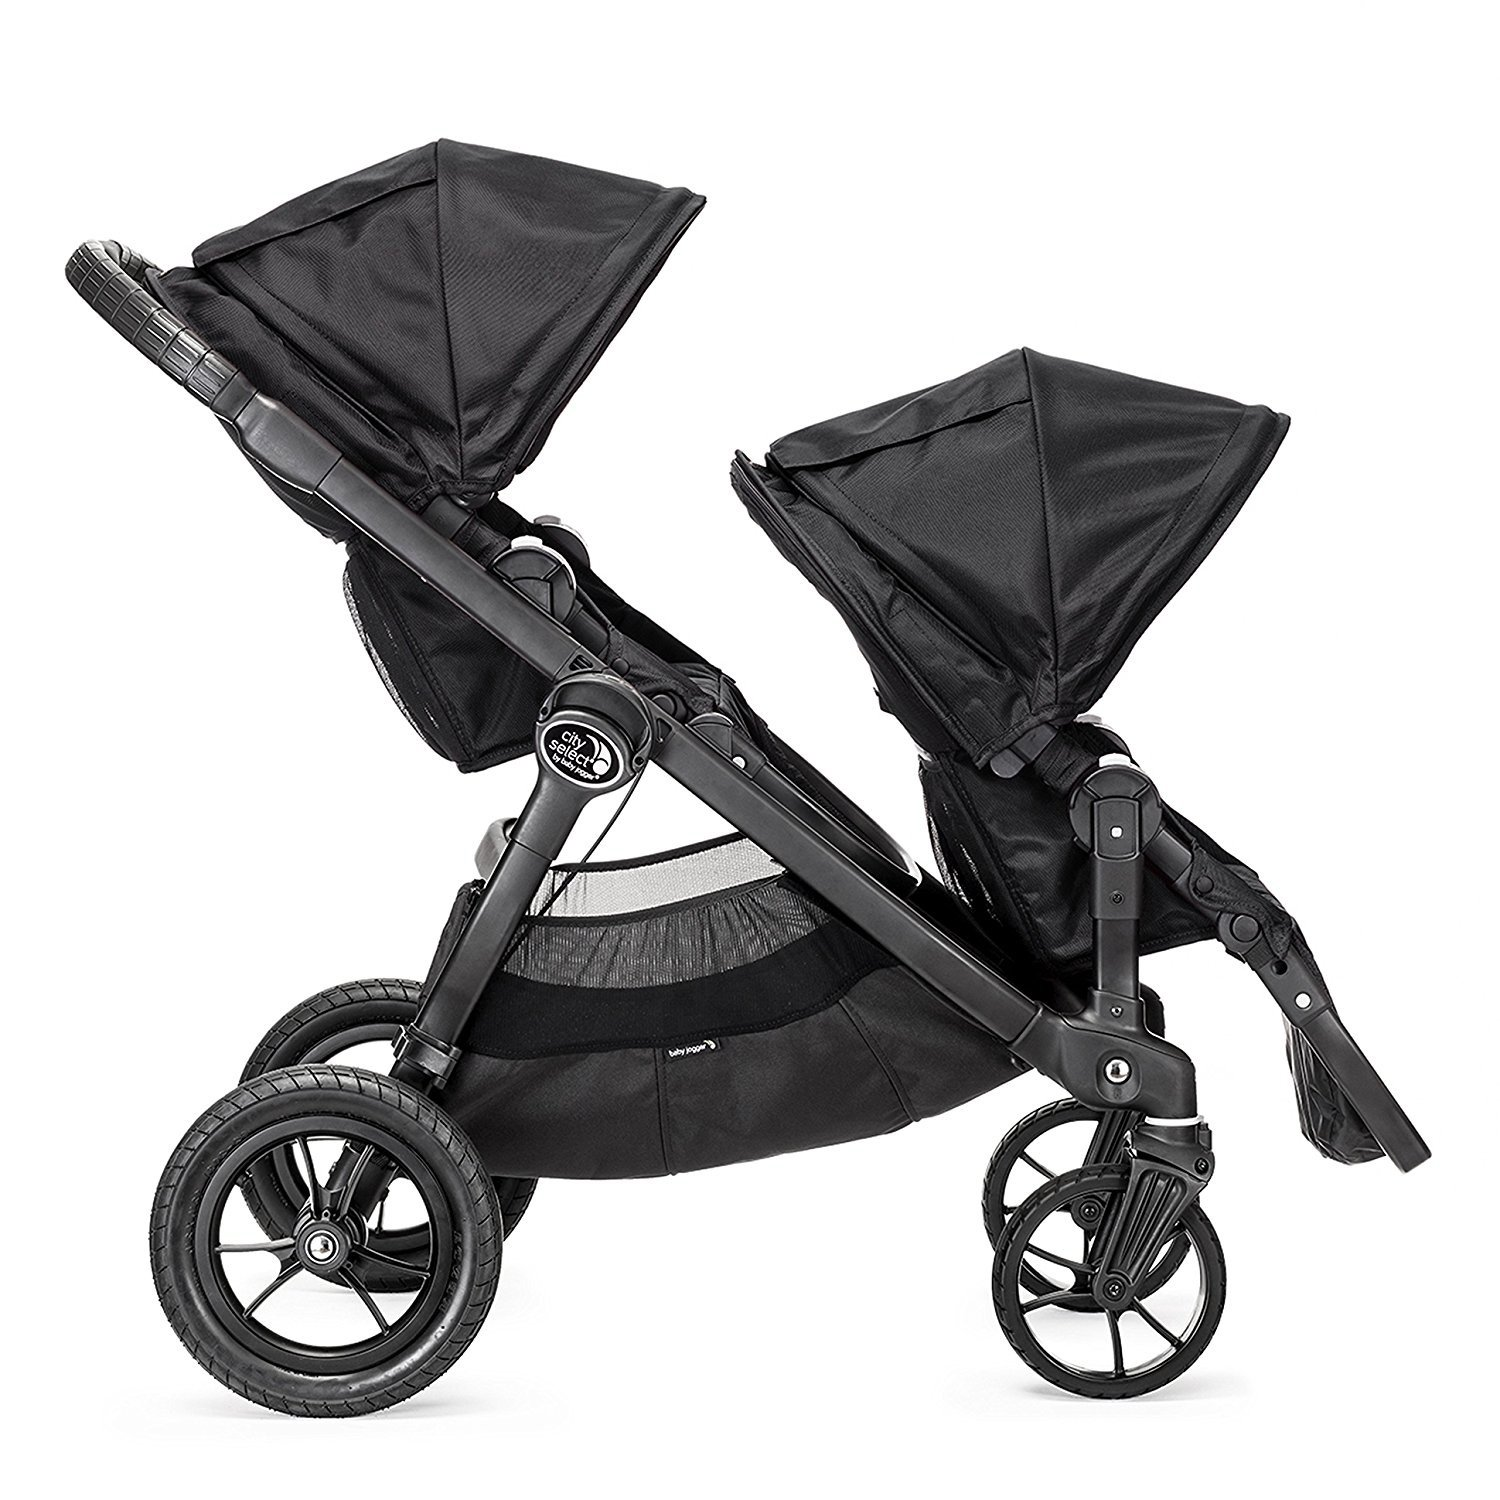 Baby Jogger City Select Second Seat Kit, Black by Baby Jogger (Image #5)